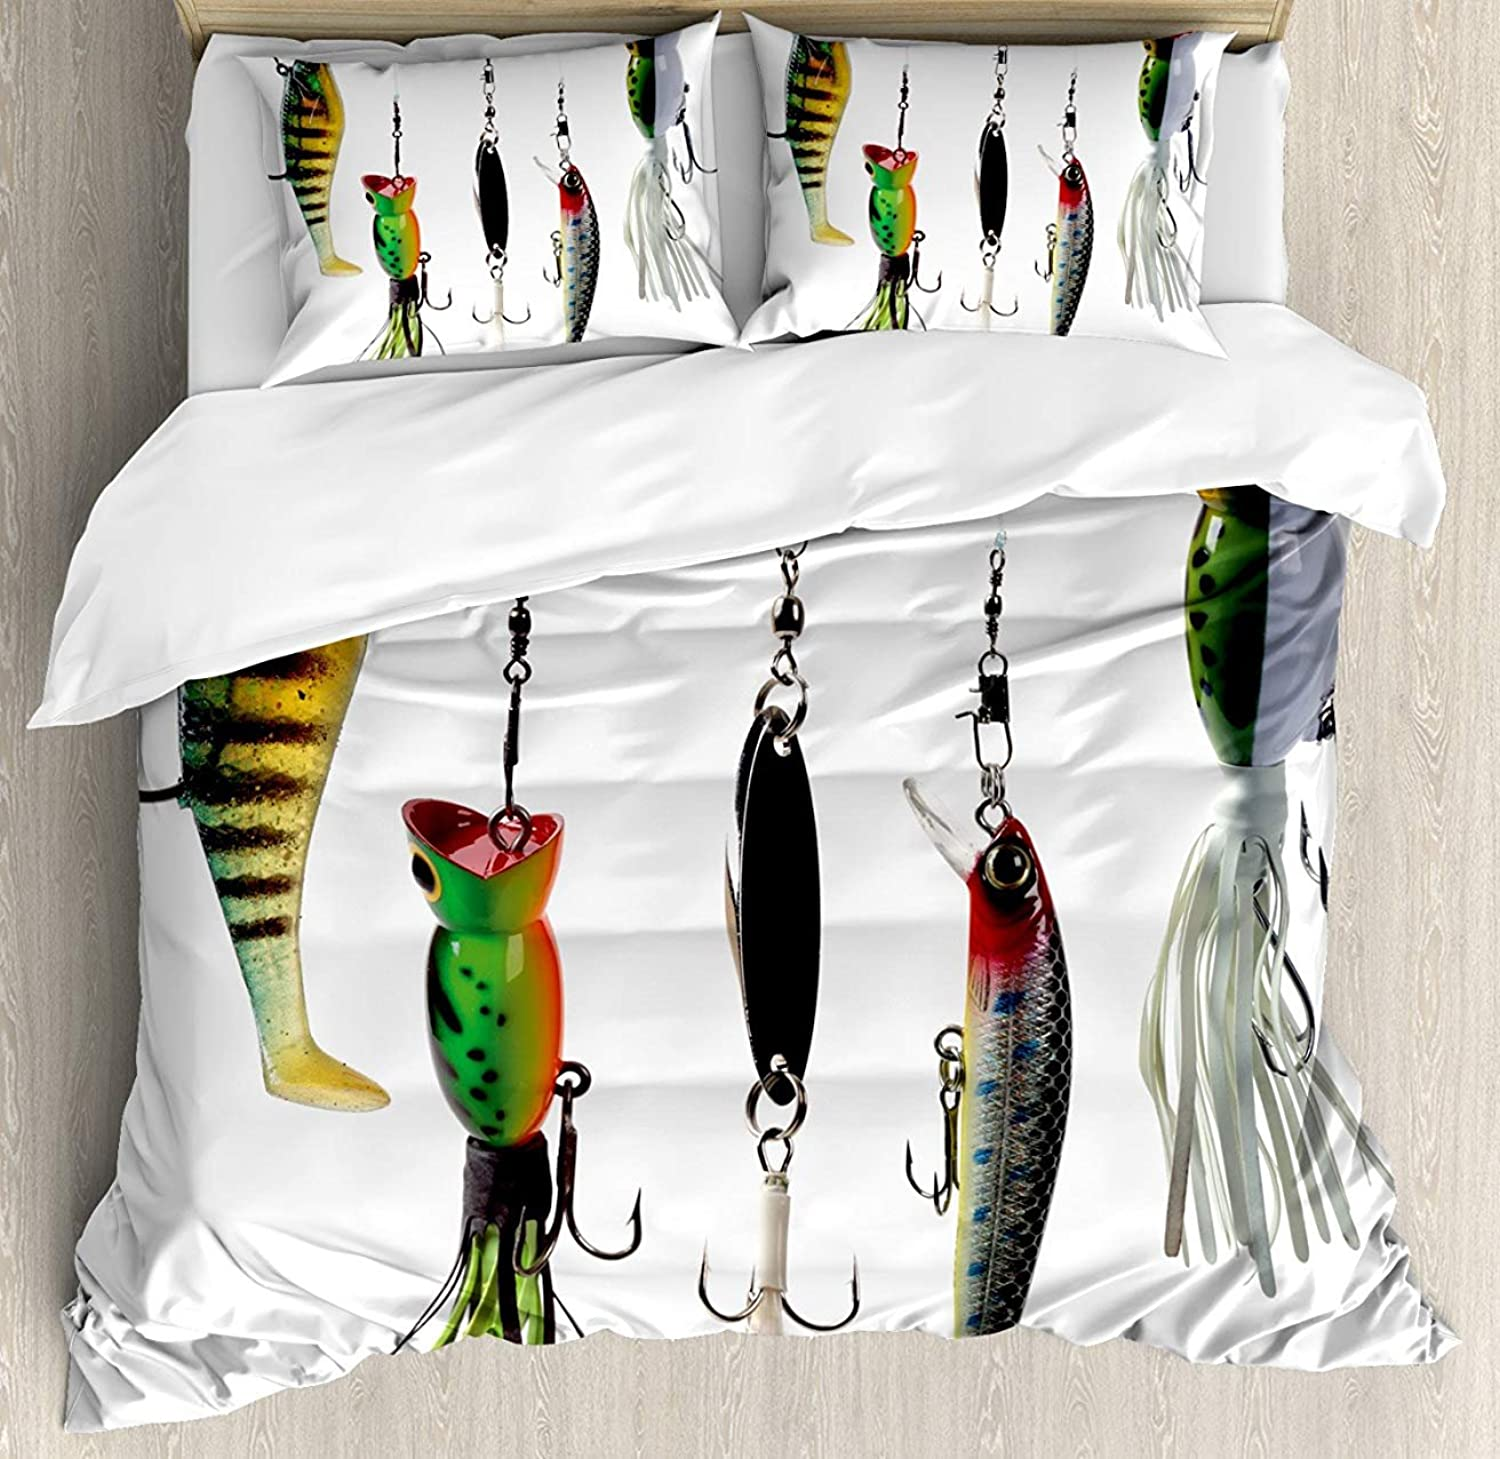 Z&L Home King Size Fishing Luxury Soft Duvet Cover Set, Various Type of Fishing Baits Hobby Leisure Passtime Sports Hooks Catch Elements, Decorative 4 Pieces Bedding Sets, Multicolor